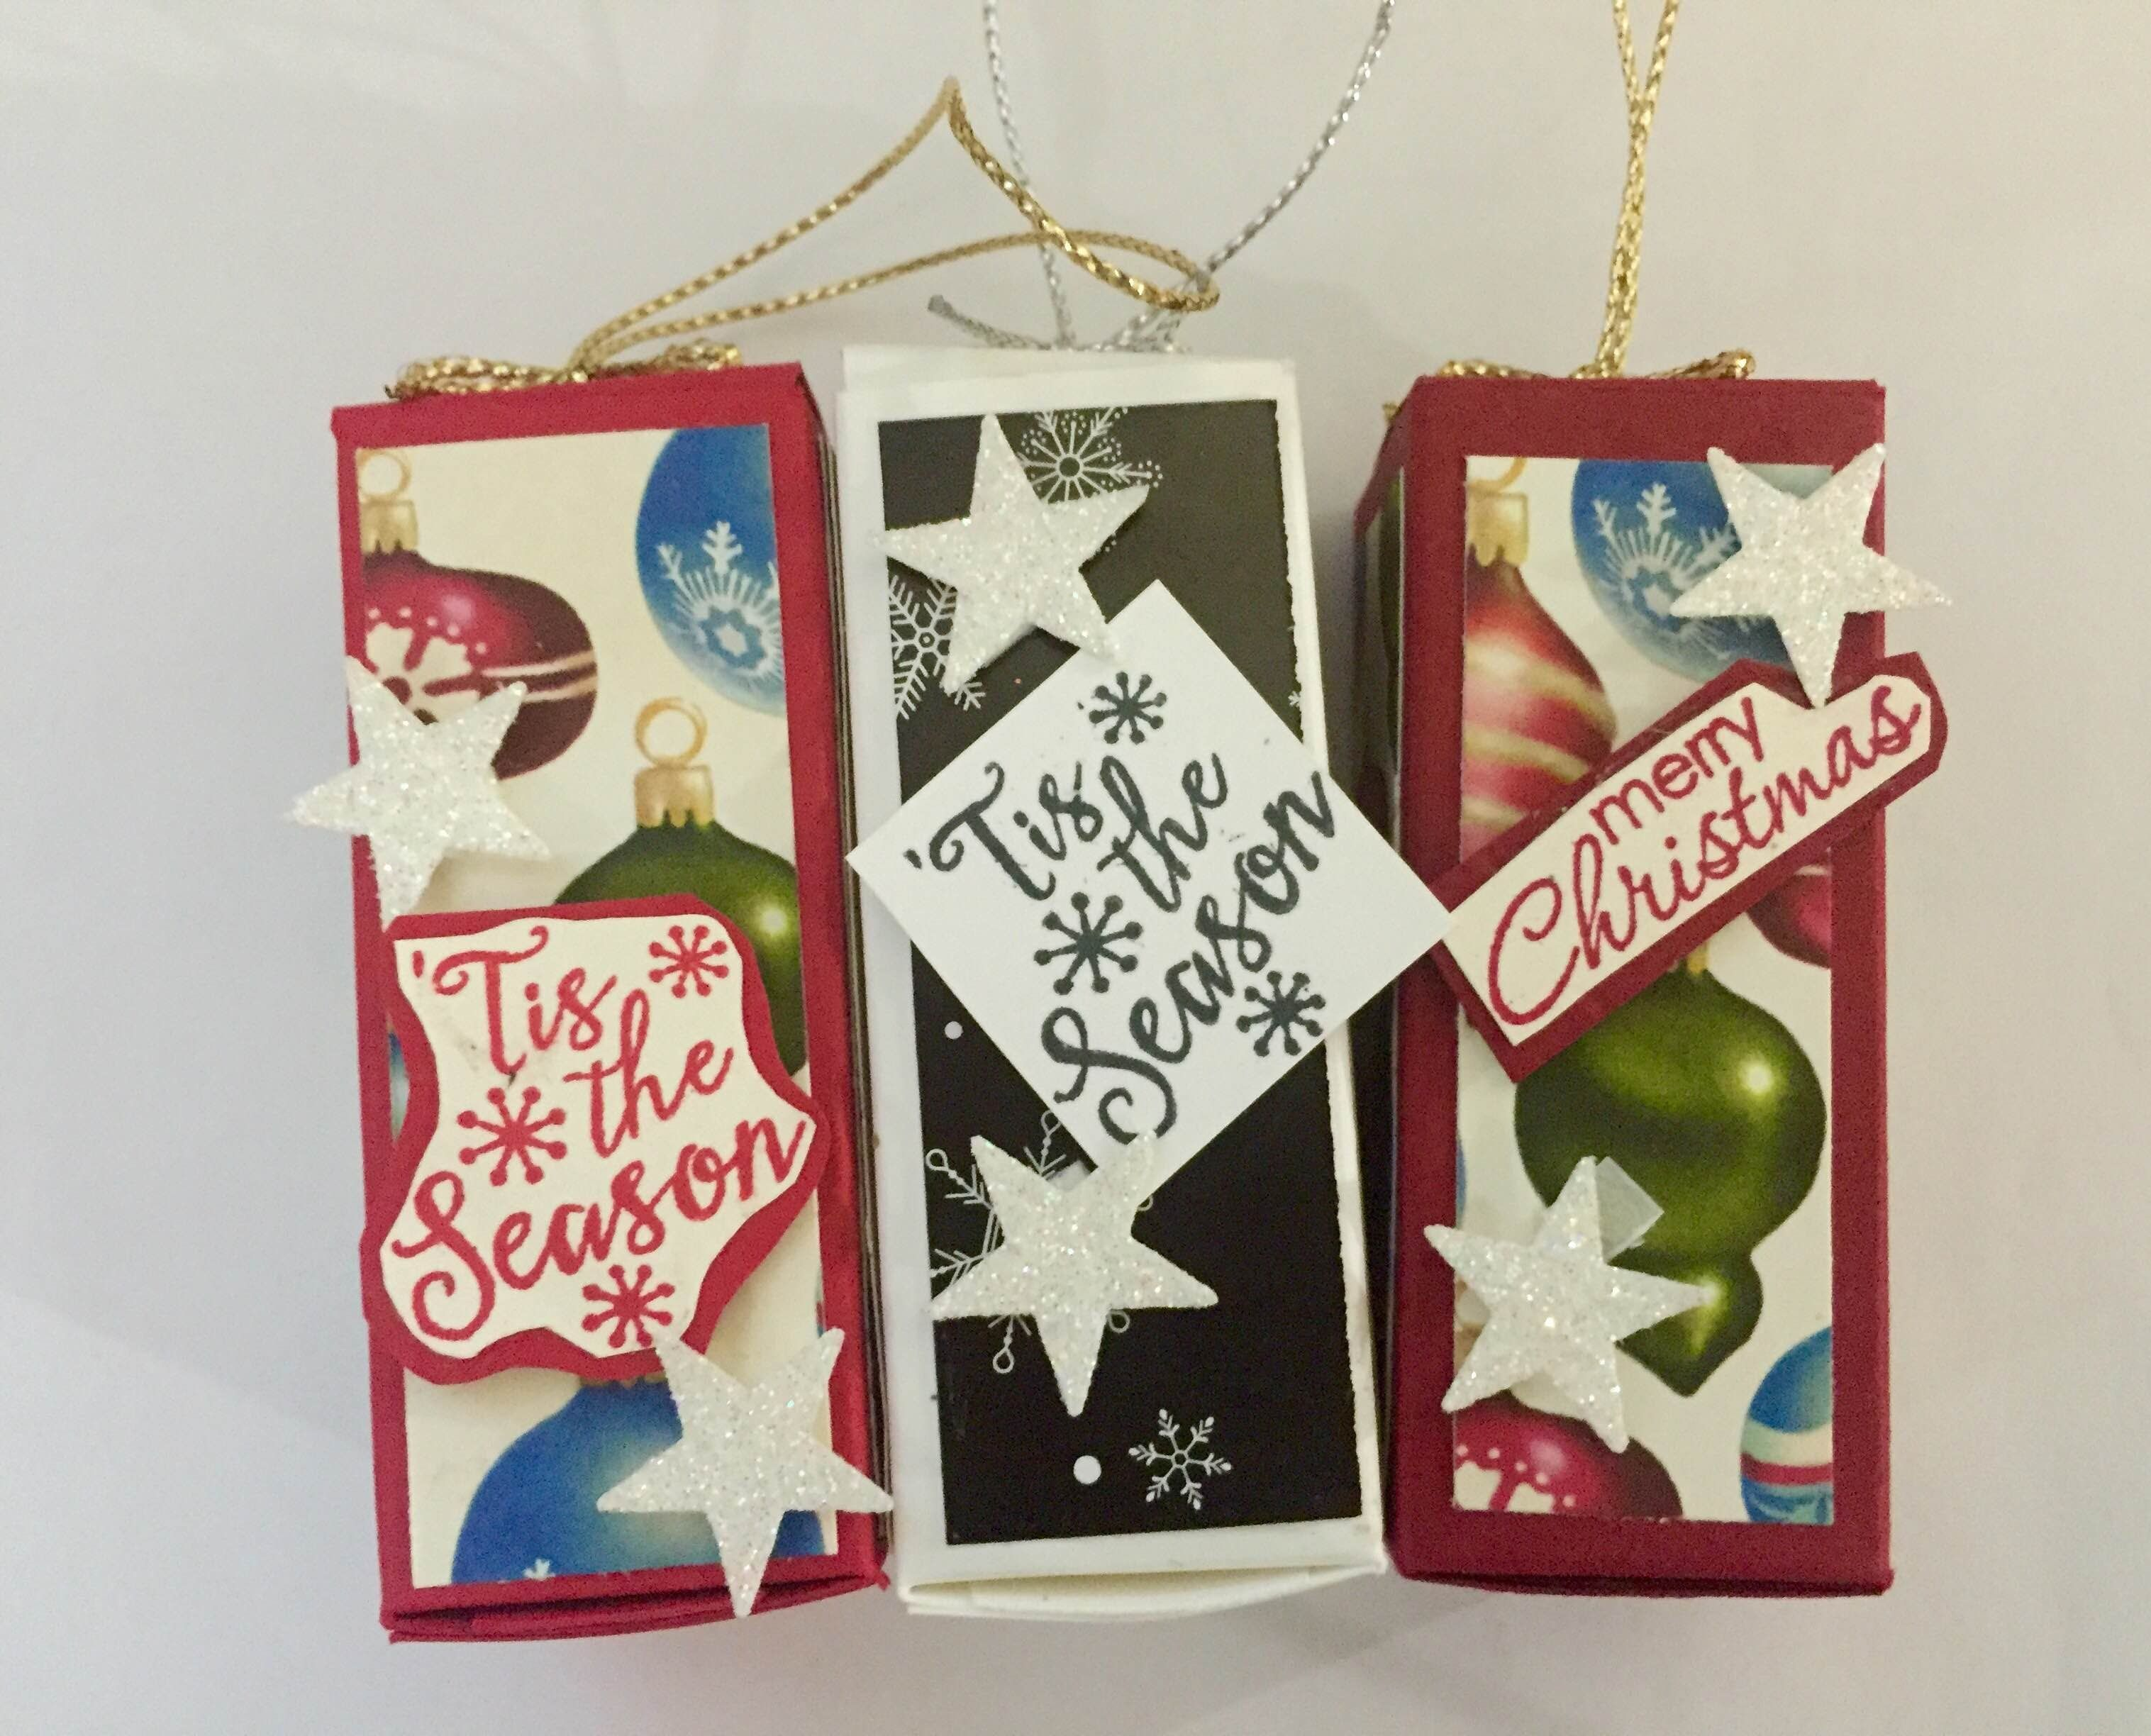 Winter wonderland christmas ornaments using stampinuup by mahes